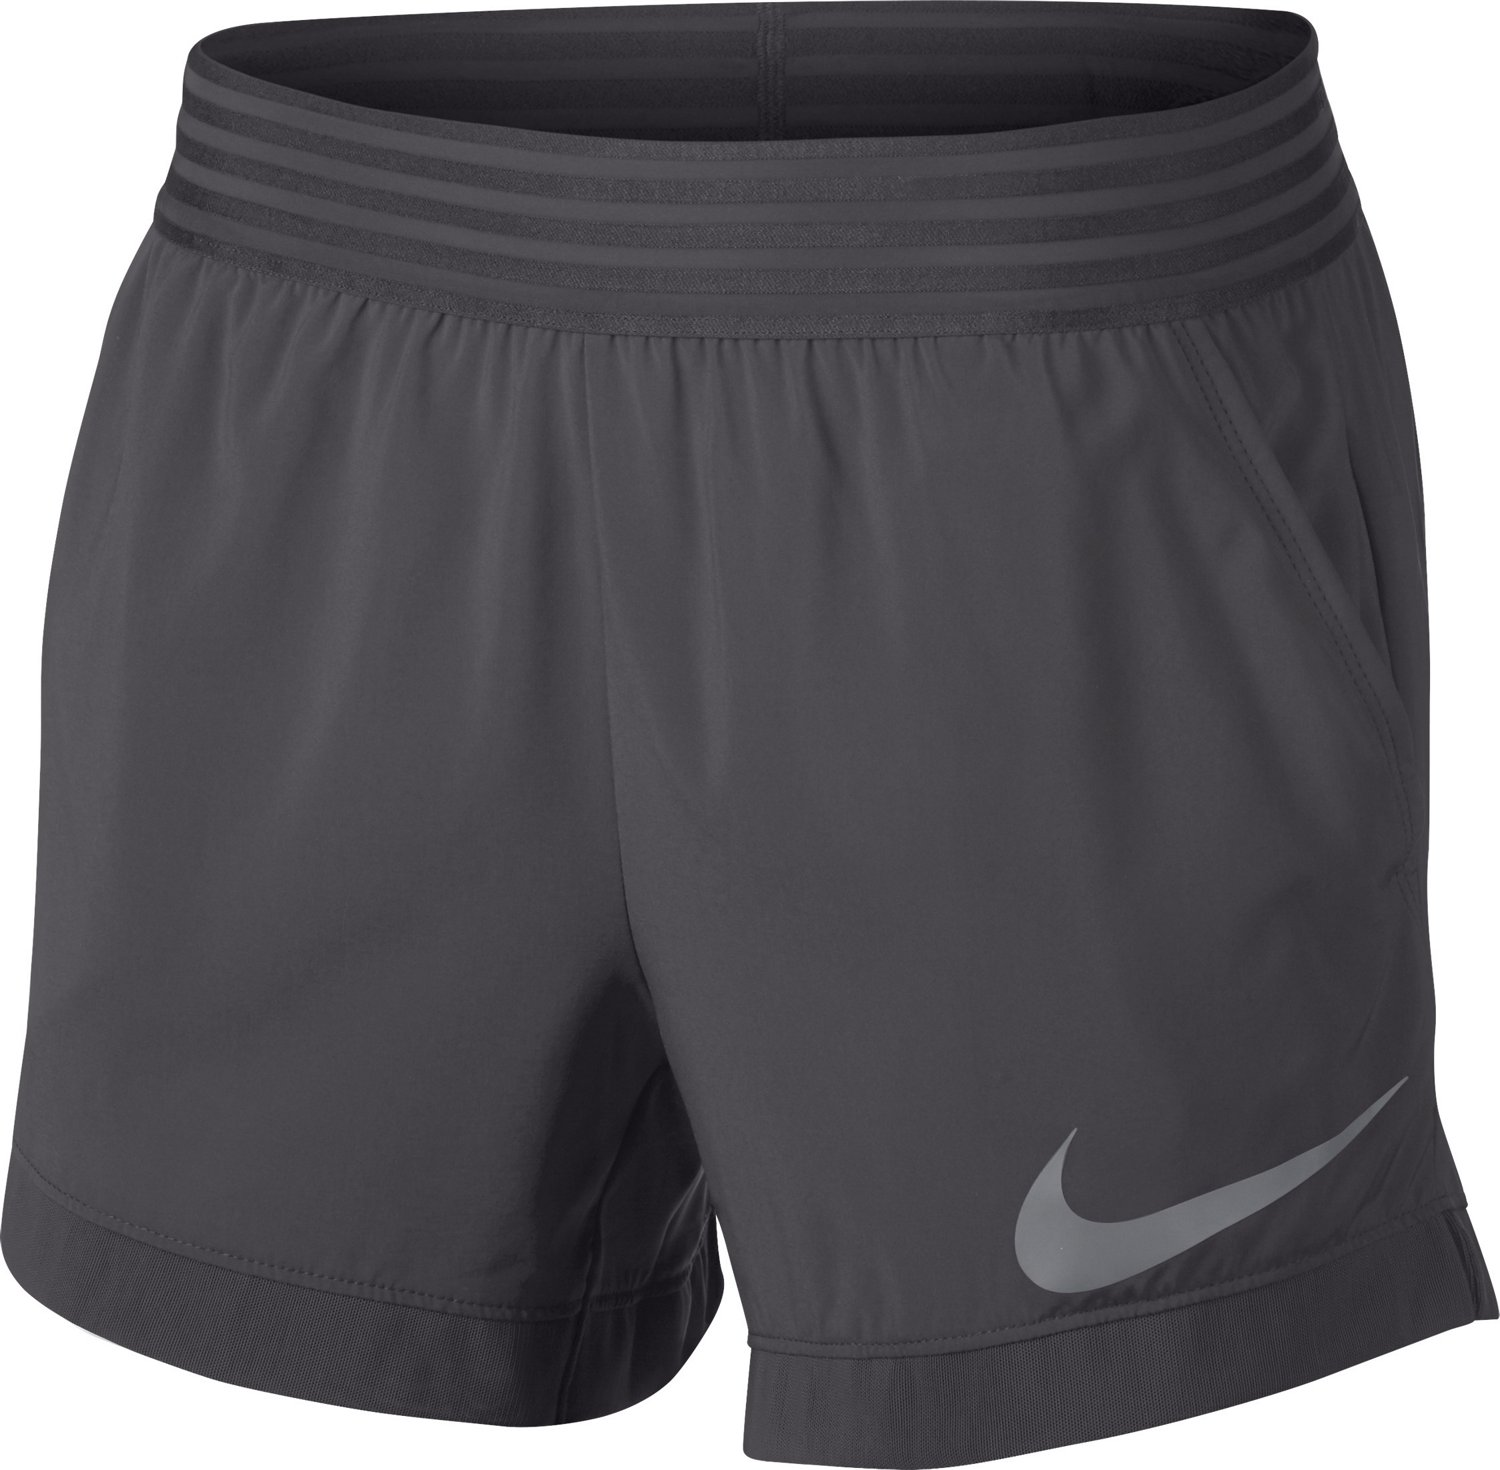 Display product reviews for Nike Women s Flex Training Short 733ead264a7